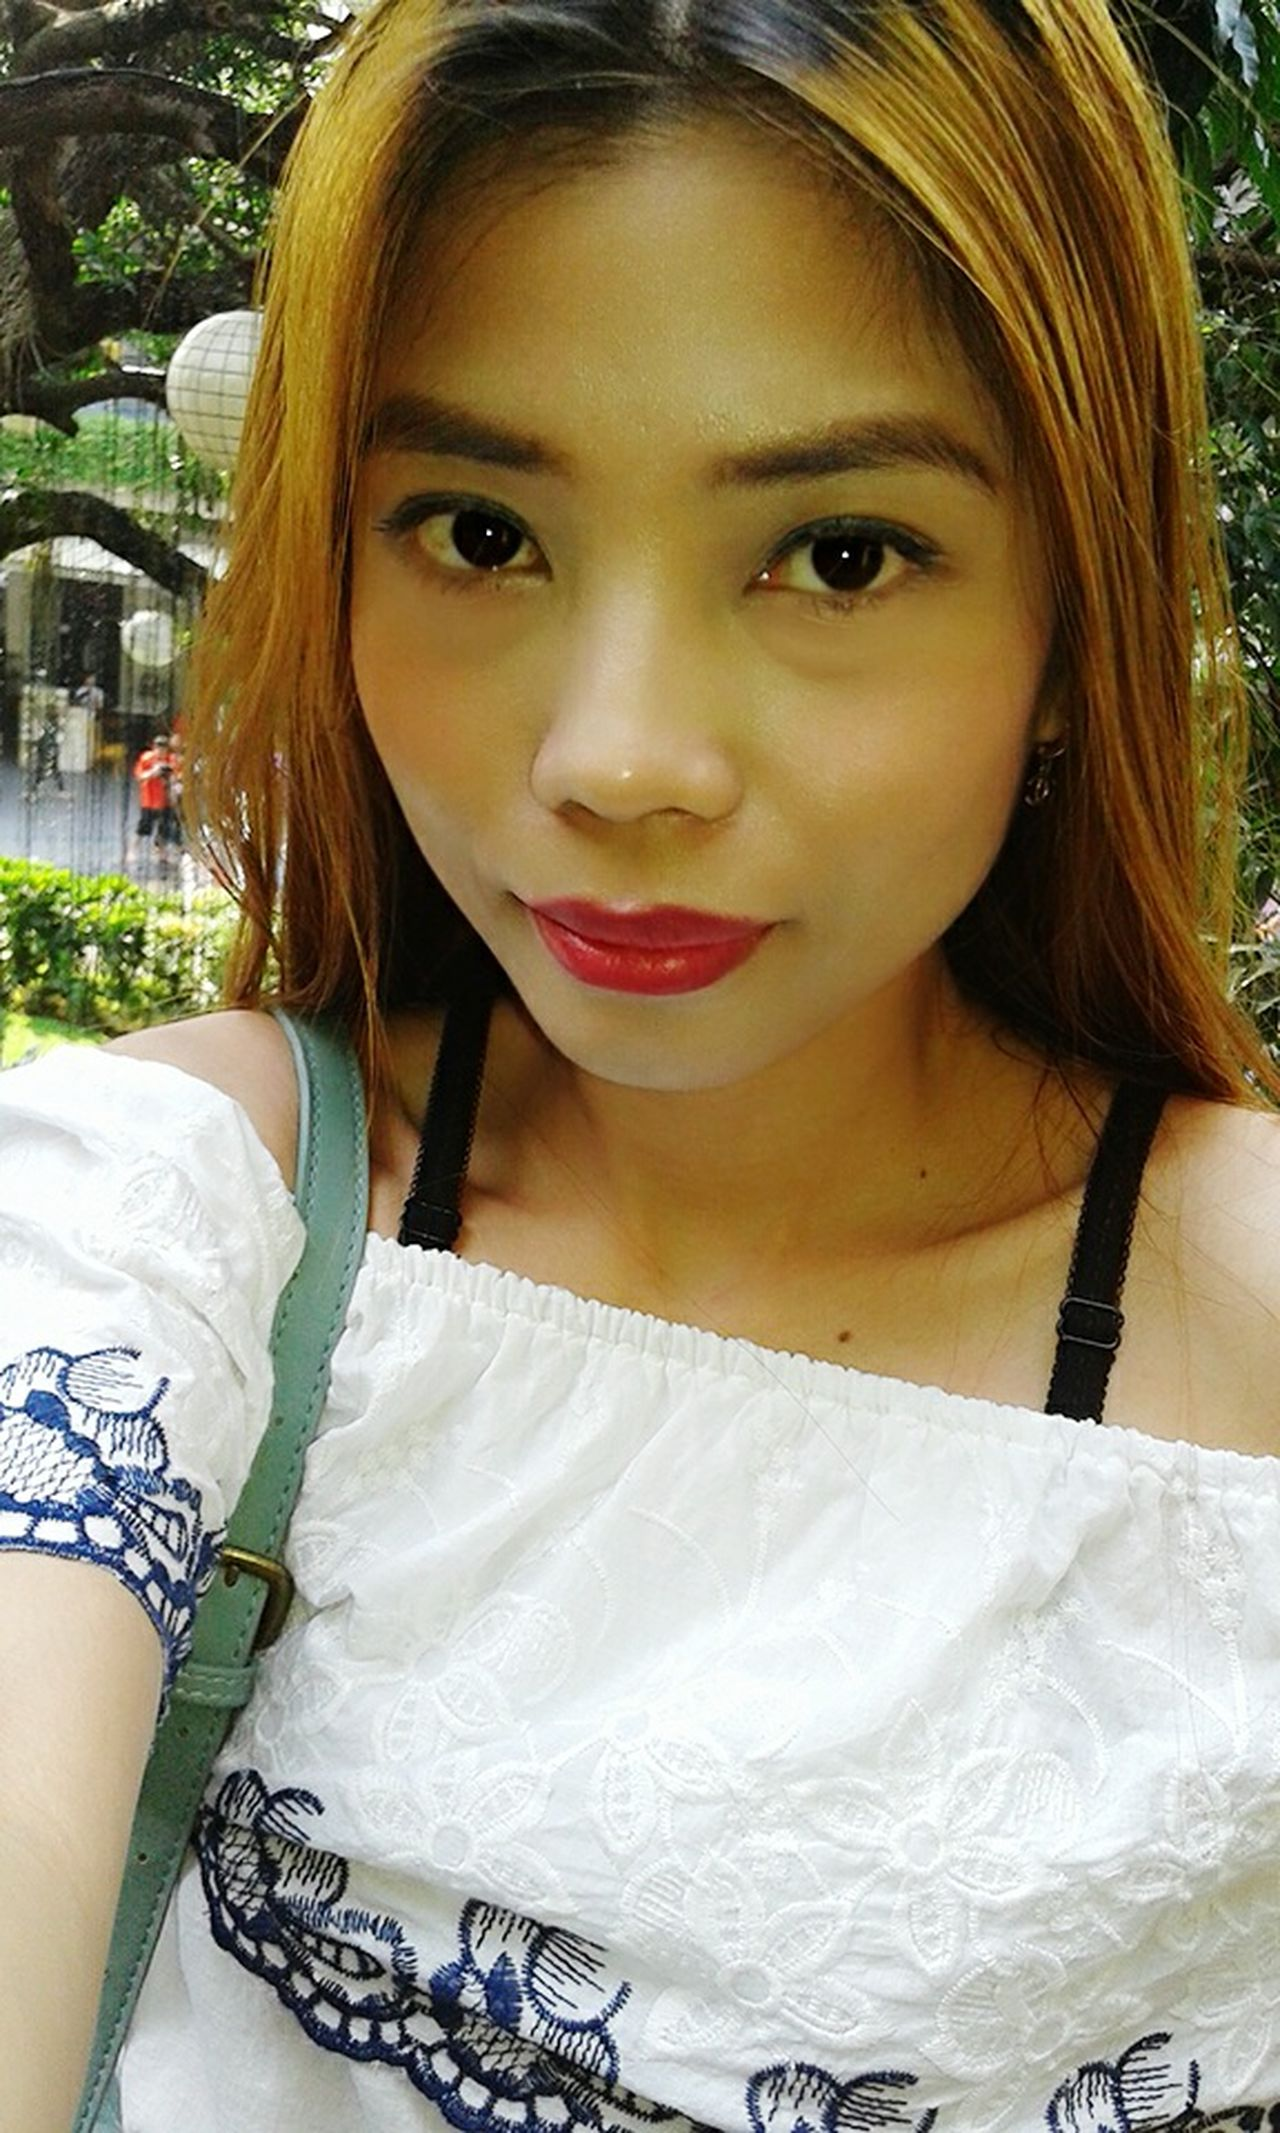 Hi! Its Me Jenny Blondehairdontcare Simple Me Express Yourself ❤ Keeping It Classy Be Yourself Simplicity Simply Pretty Beauty In Ordinary Things Self Portrait Filipina Fashion&love&beauty My Blog http://jennyfashionillustration.jimdo.com